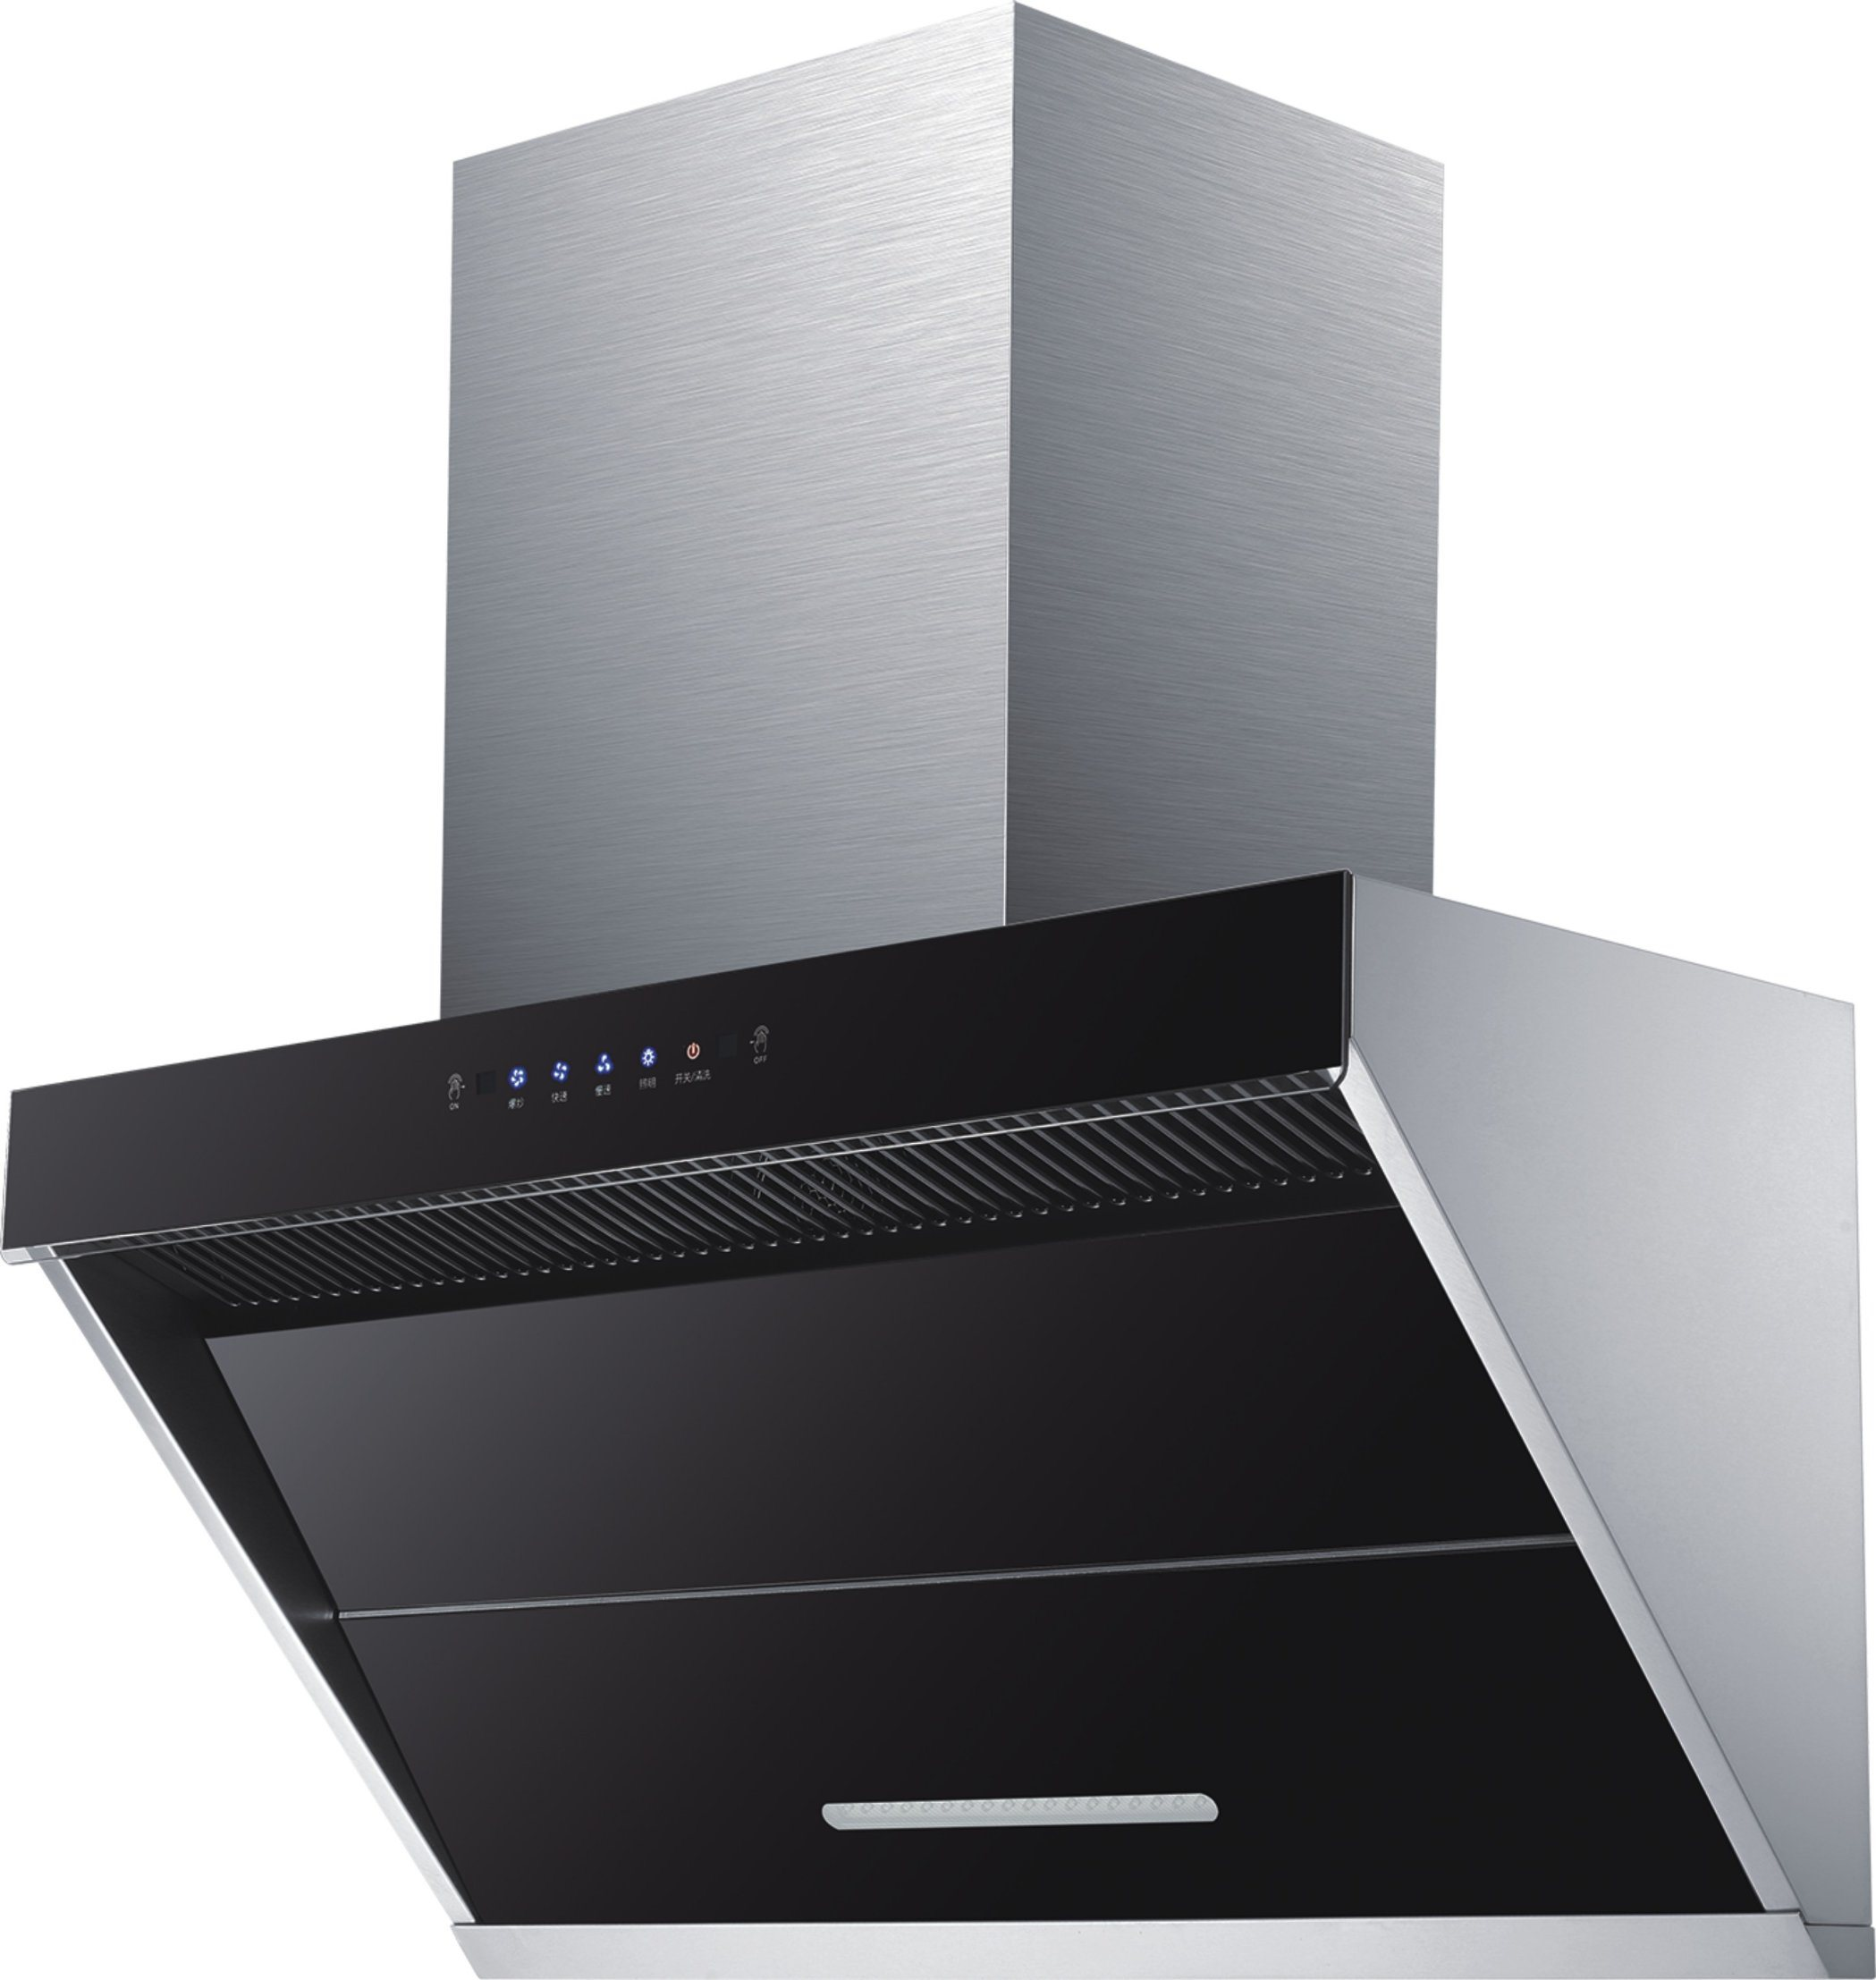 China Commercial Kitchen Hood System Restaurants Hotels Rangehood Esp Filter Integrated Exhaust Hood China Hood Fan And Cooking Range Hood Price